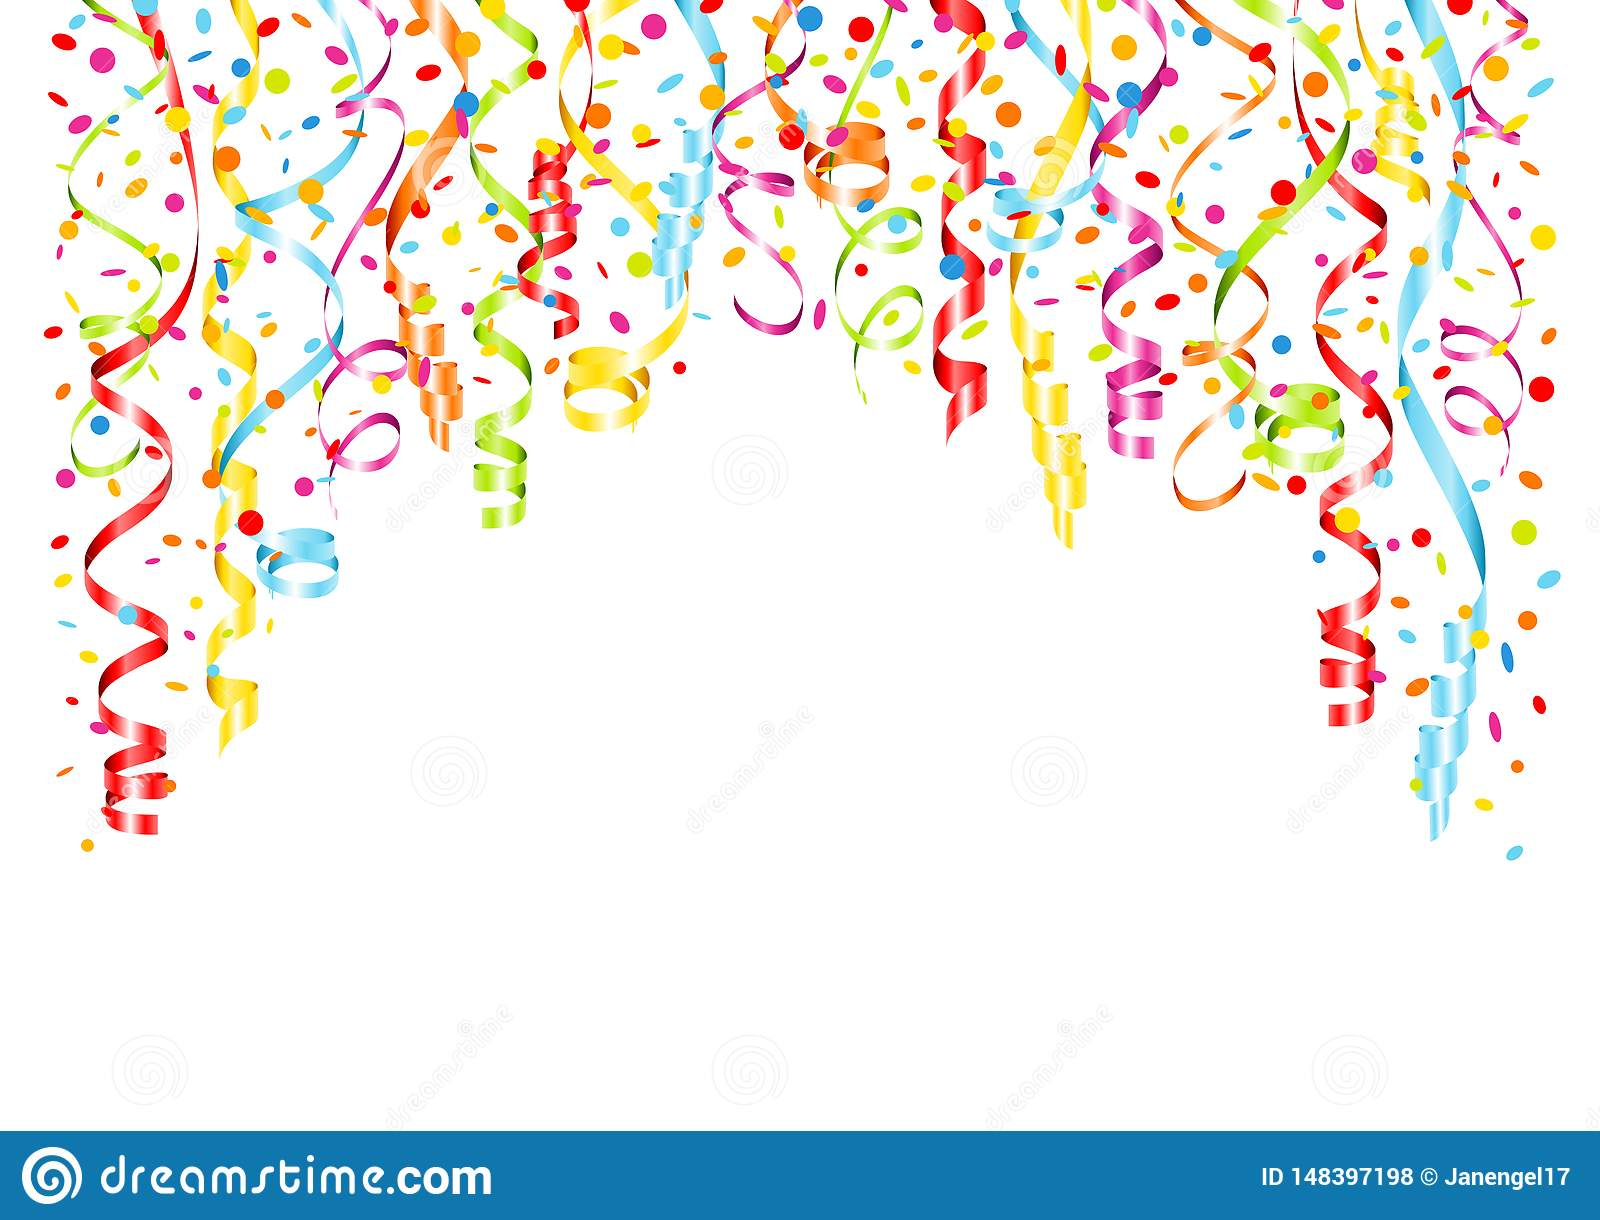 Background Streamers And Confetti Horizontal